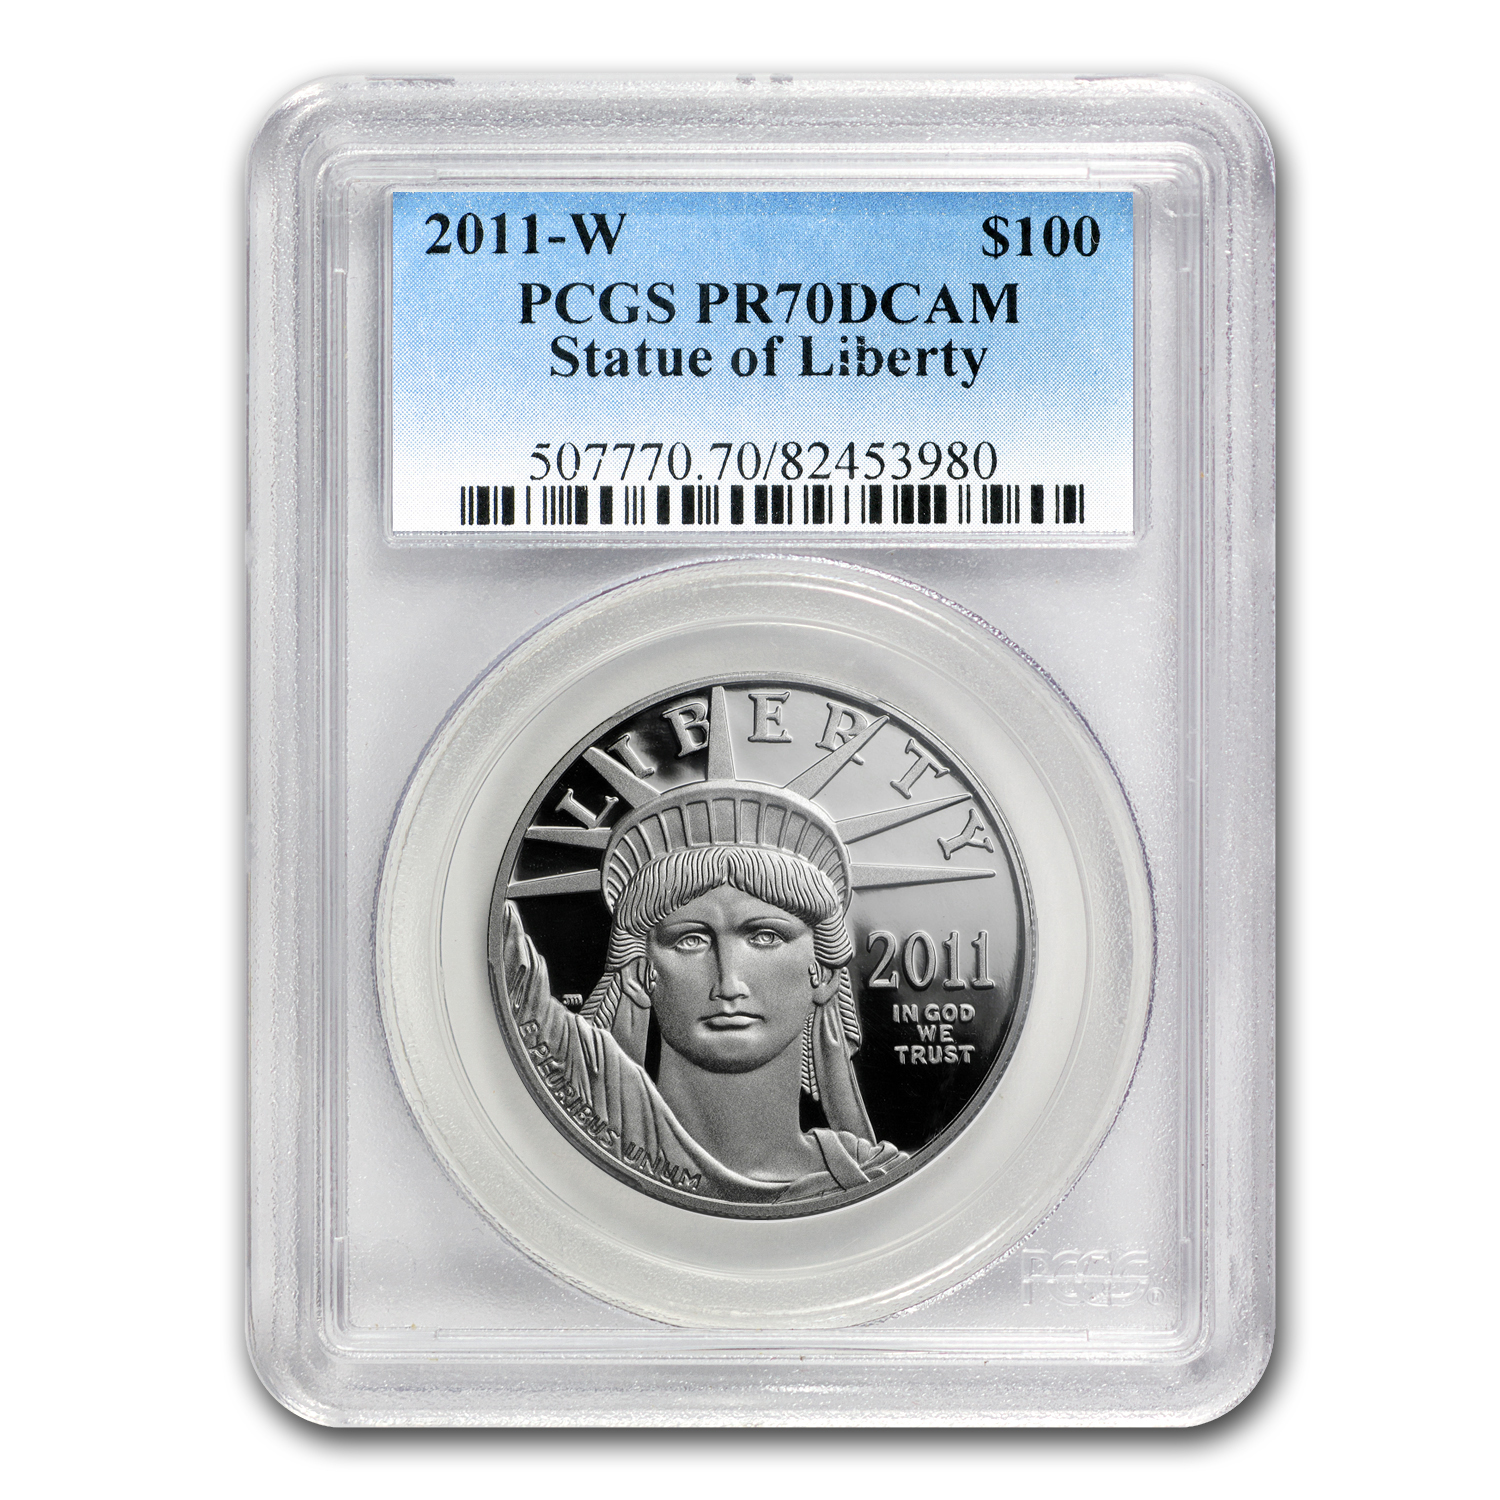 2011-W 1 oz Proof Platinum American Eagle PCGS PR-70